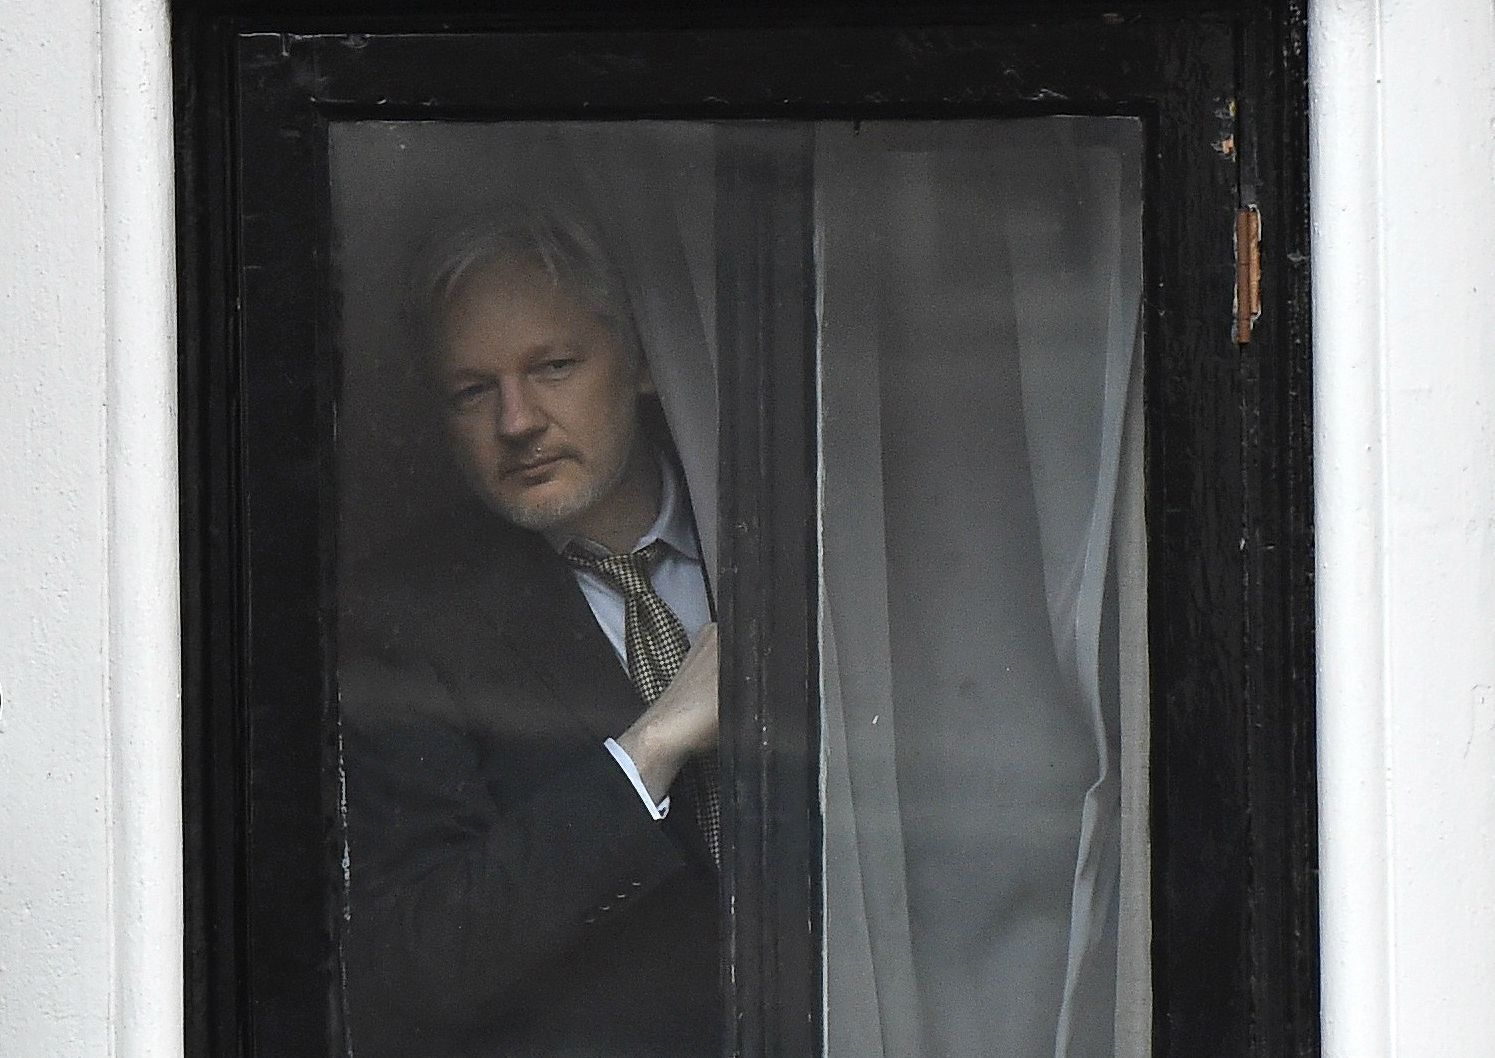 Assange embassy wikileaks united nations Sweden police arrest UK US